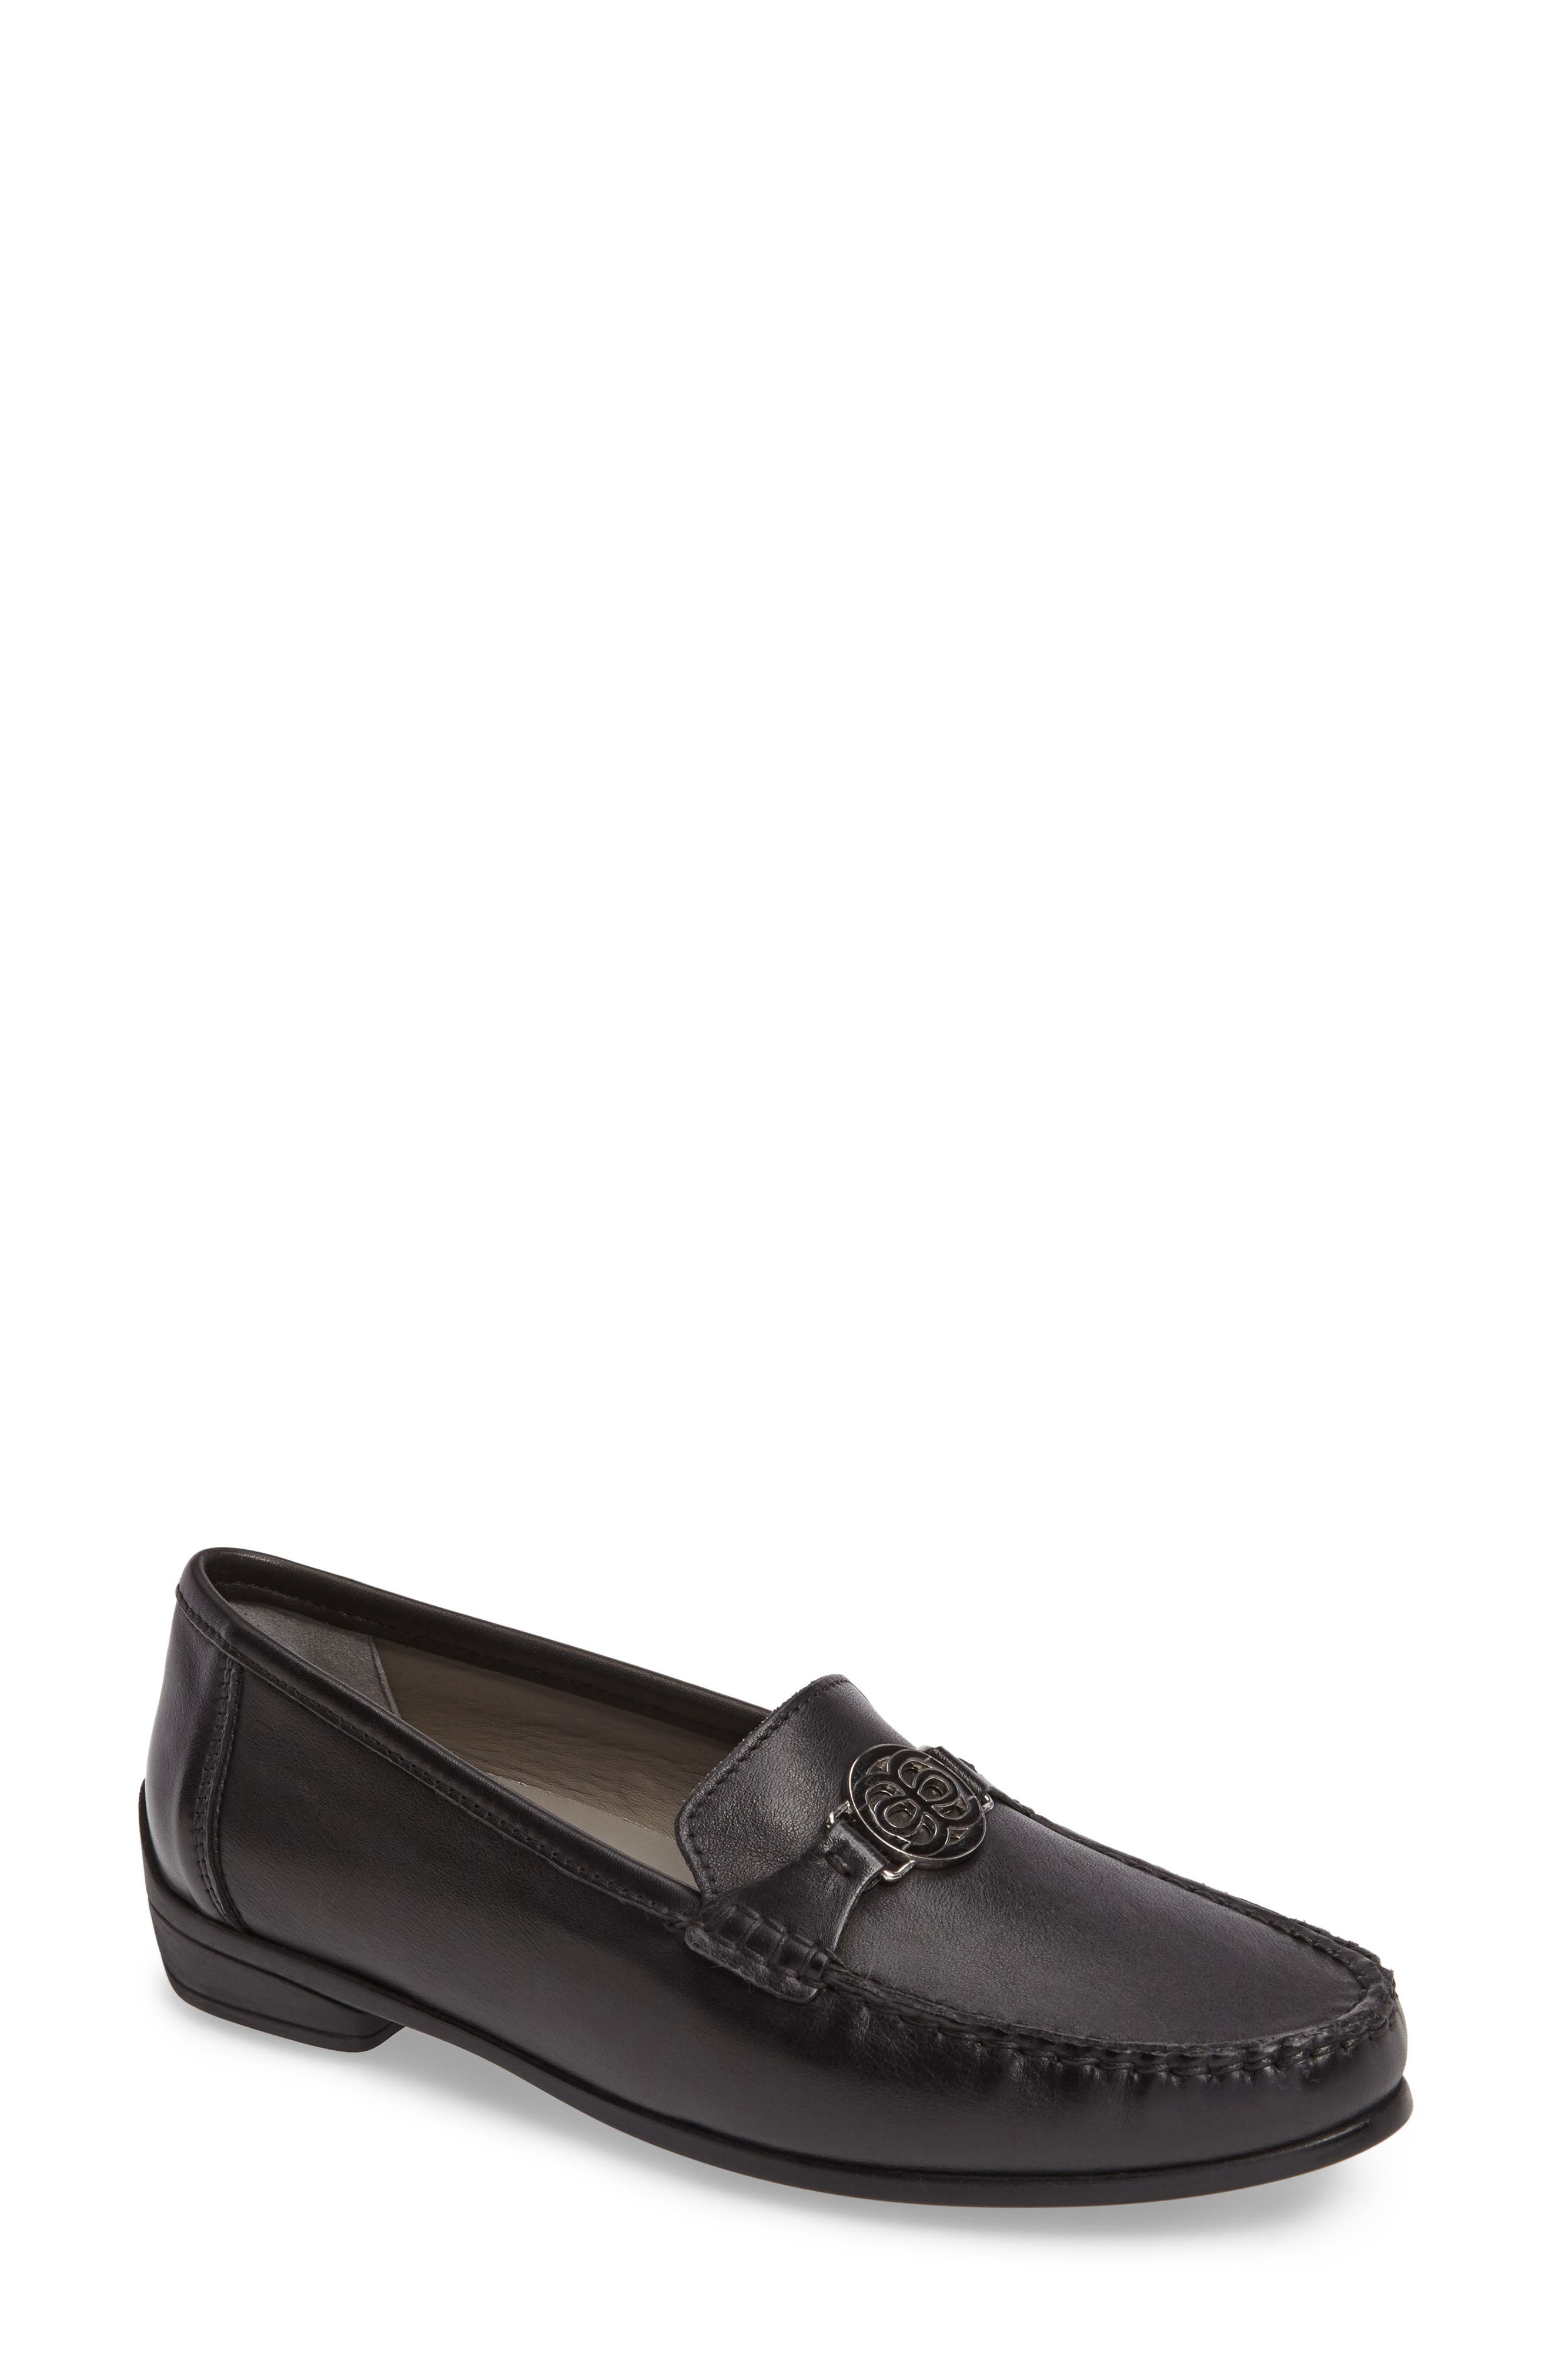 Alternate Image 1 Selected - ara Blanche Loafer (Women)